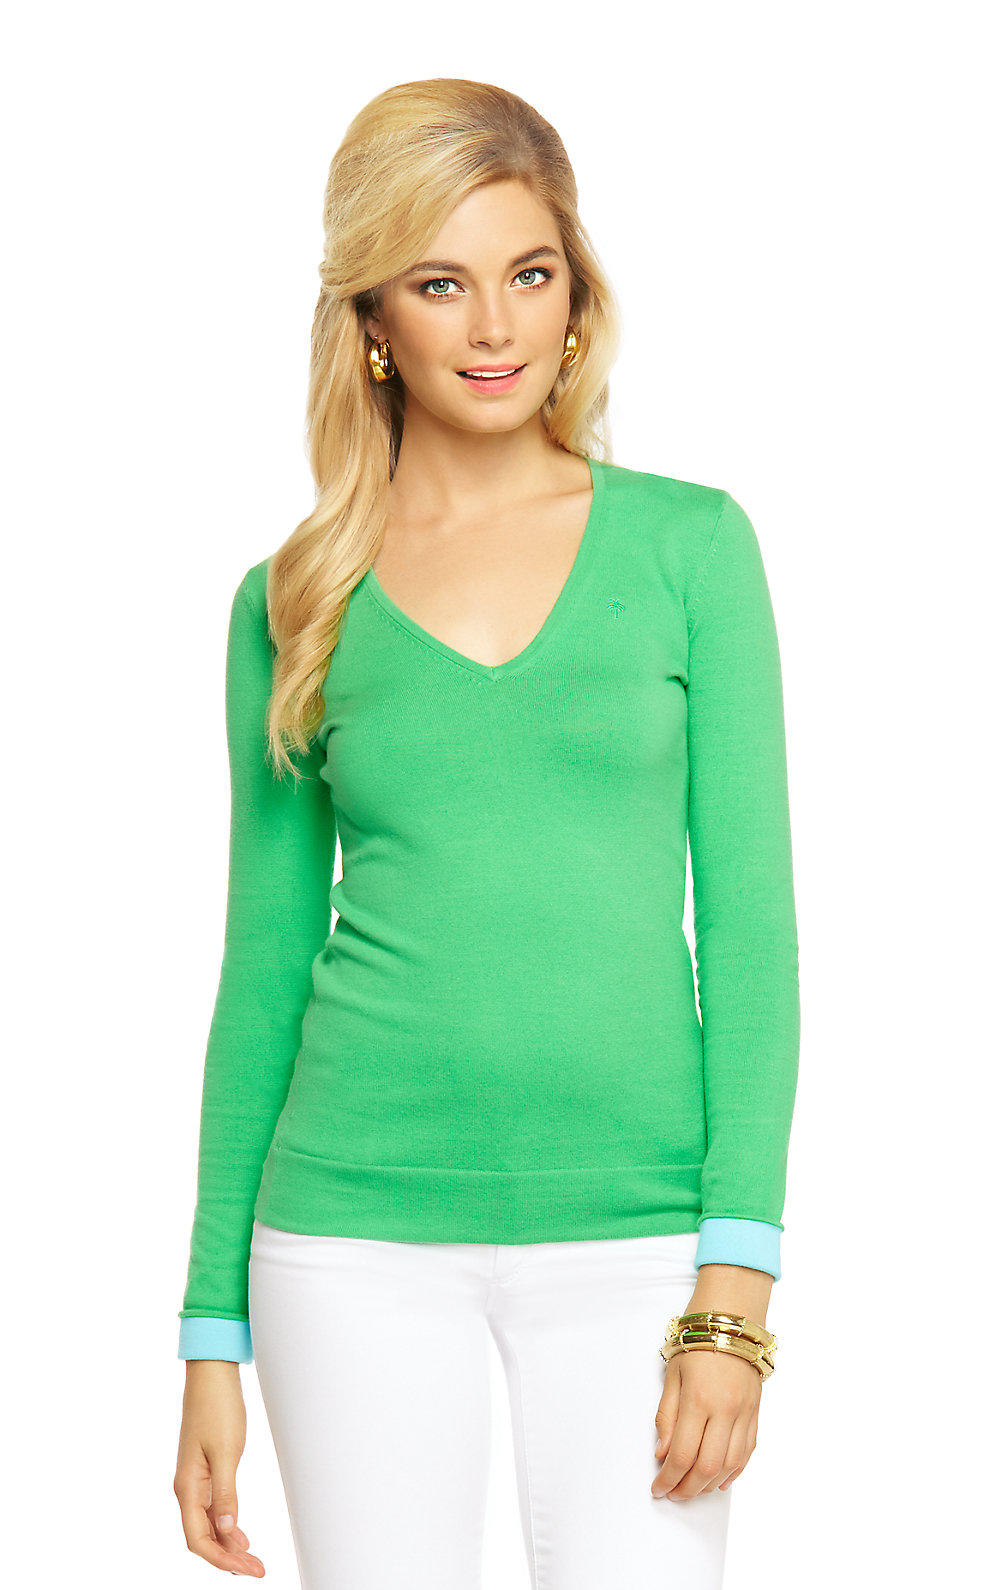 Bathroom accessories adelaide - Lilly Pulitzer Adelaide V Neck Sweater From Lilly Pulitzer